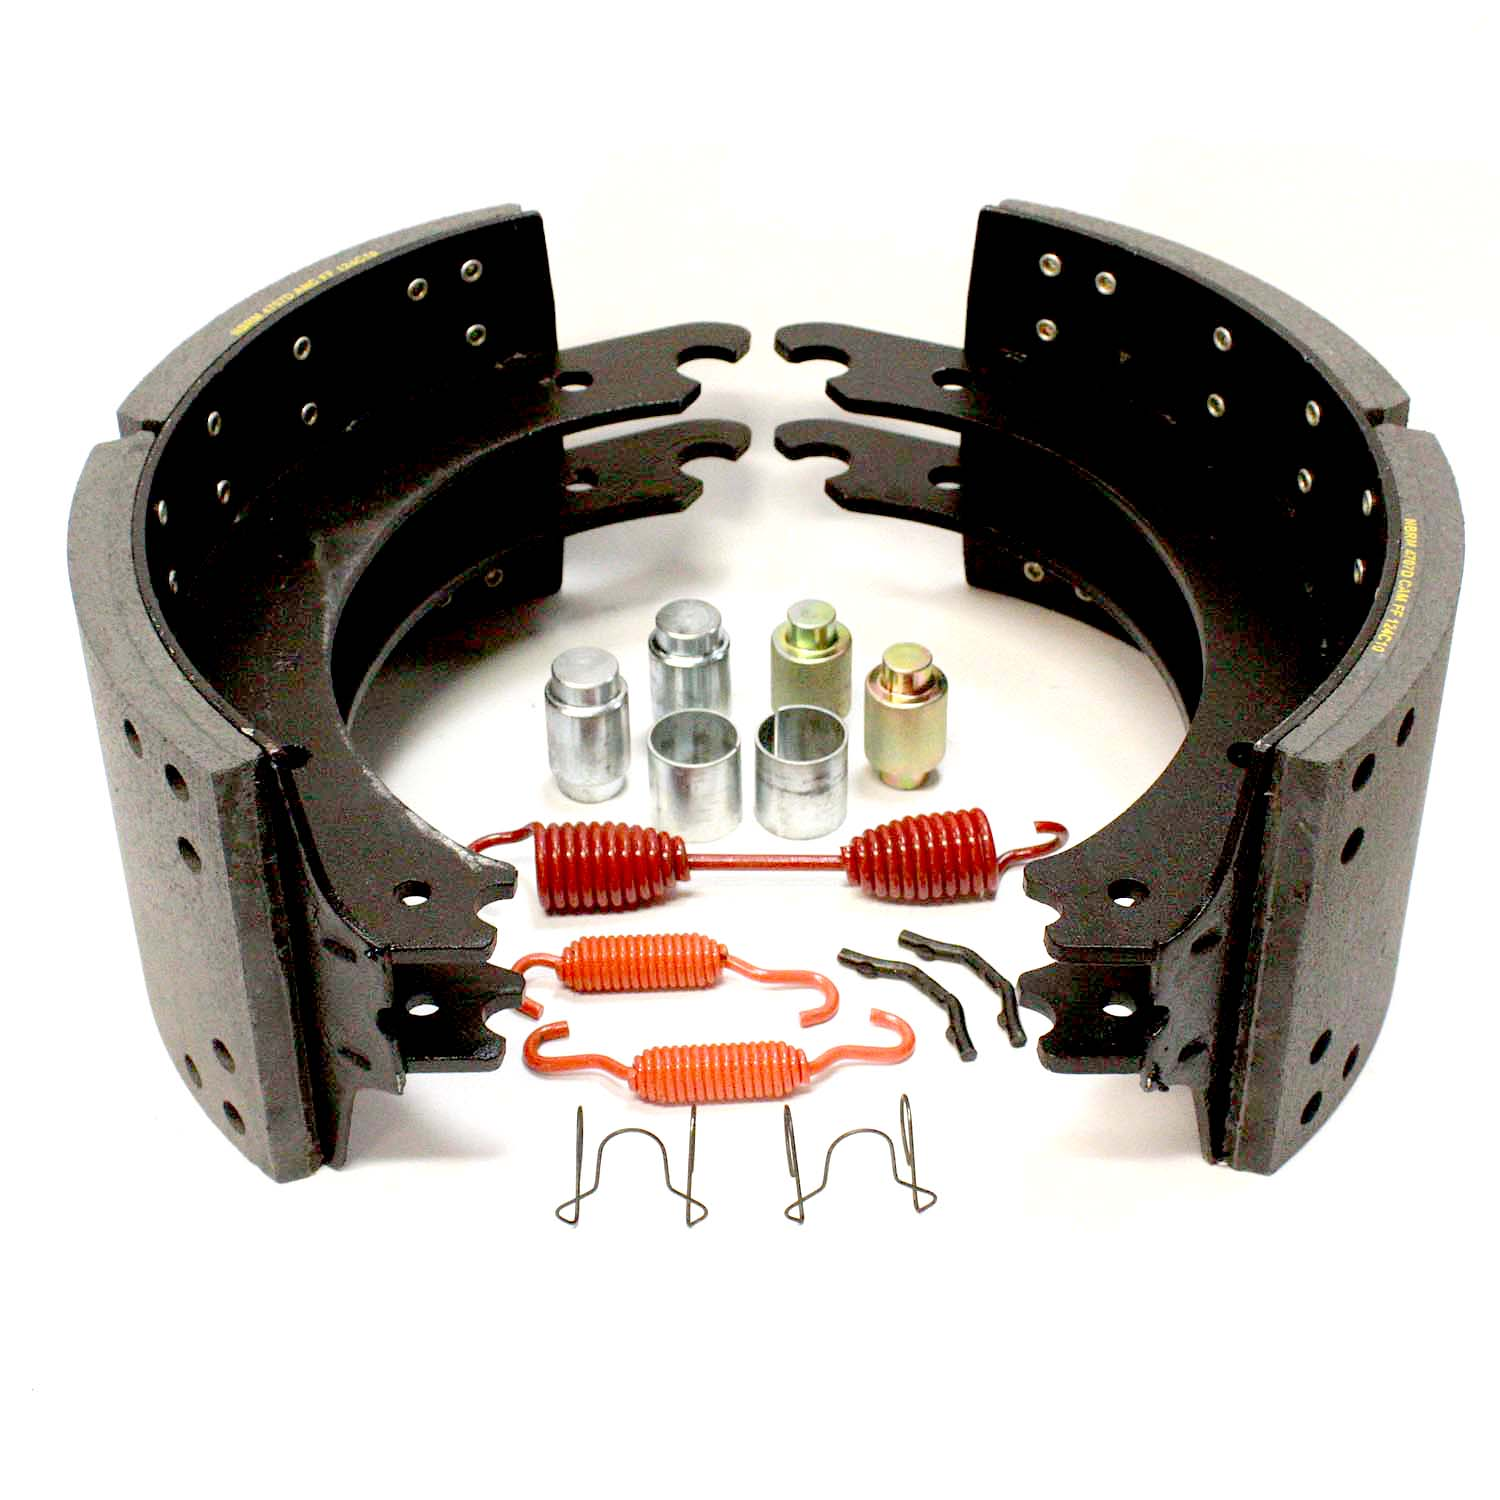 L4311J-EK1HD Box of Brakes 23K